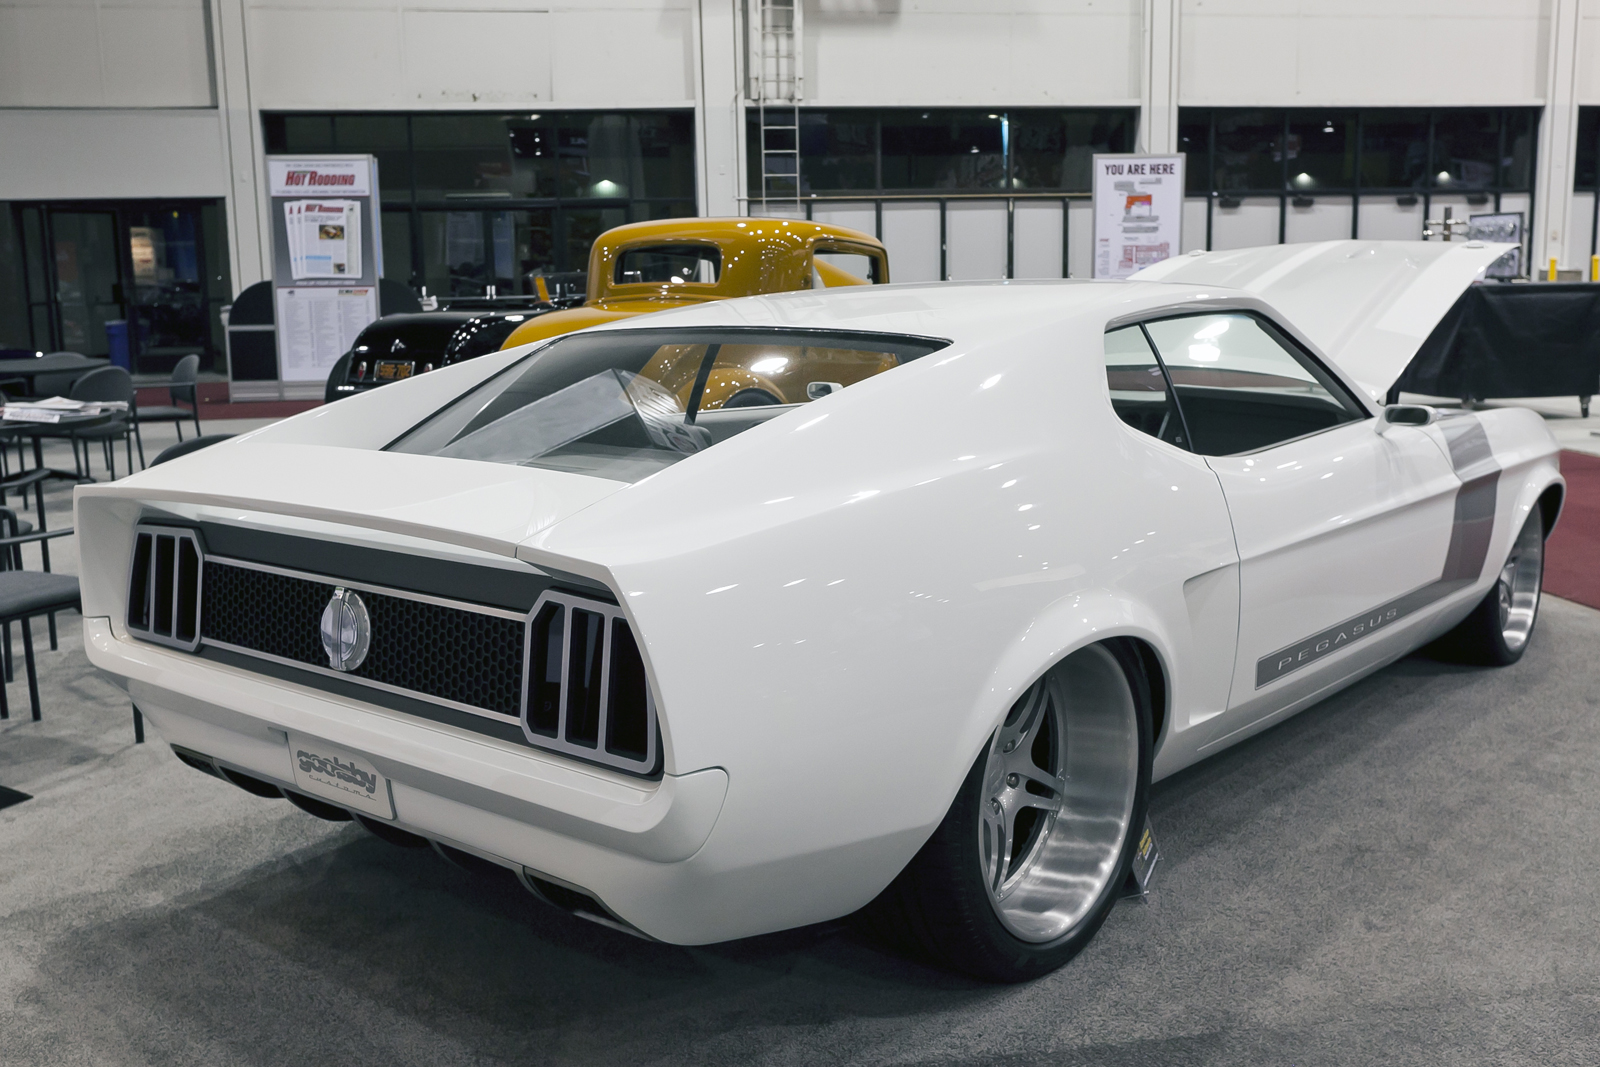 1971 Ford Mustang Pegasus By Goolsby Customs Top Speed Coupe